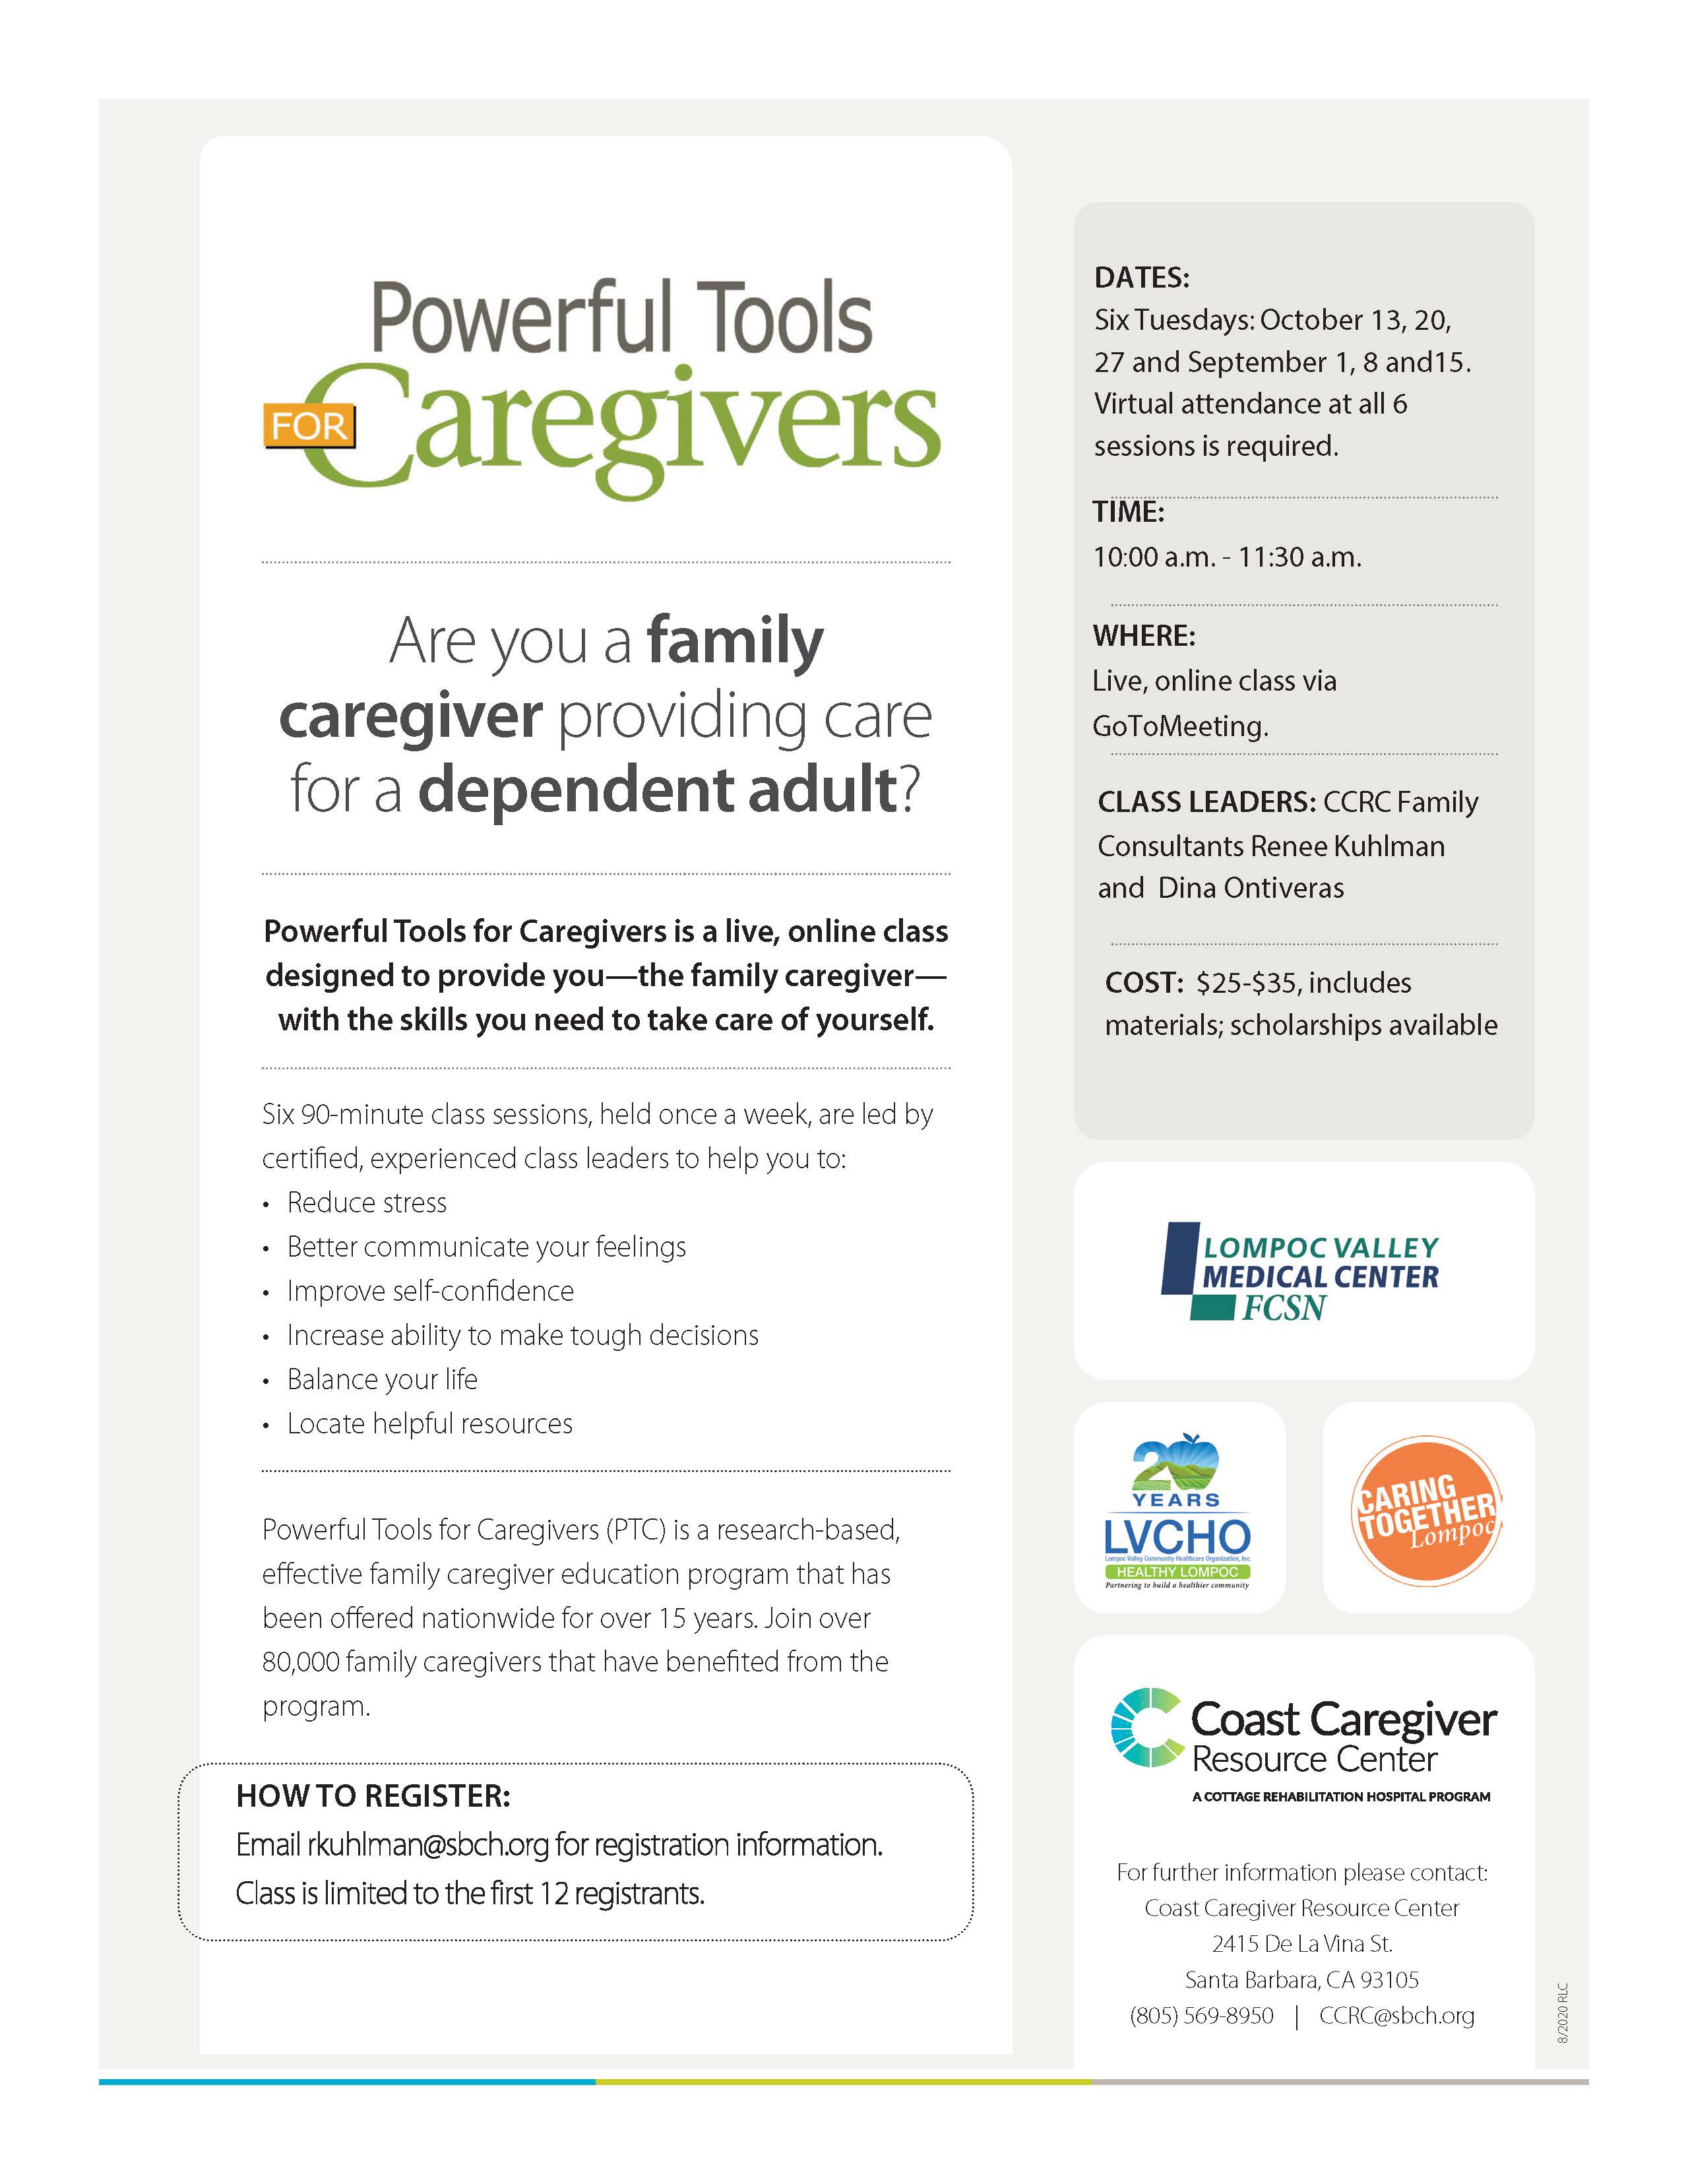 Powerful Tools for Caregivers October 2020